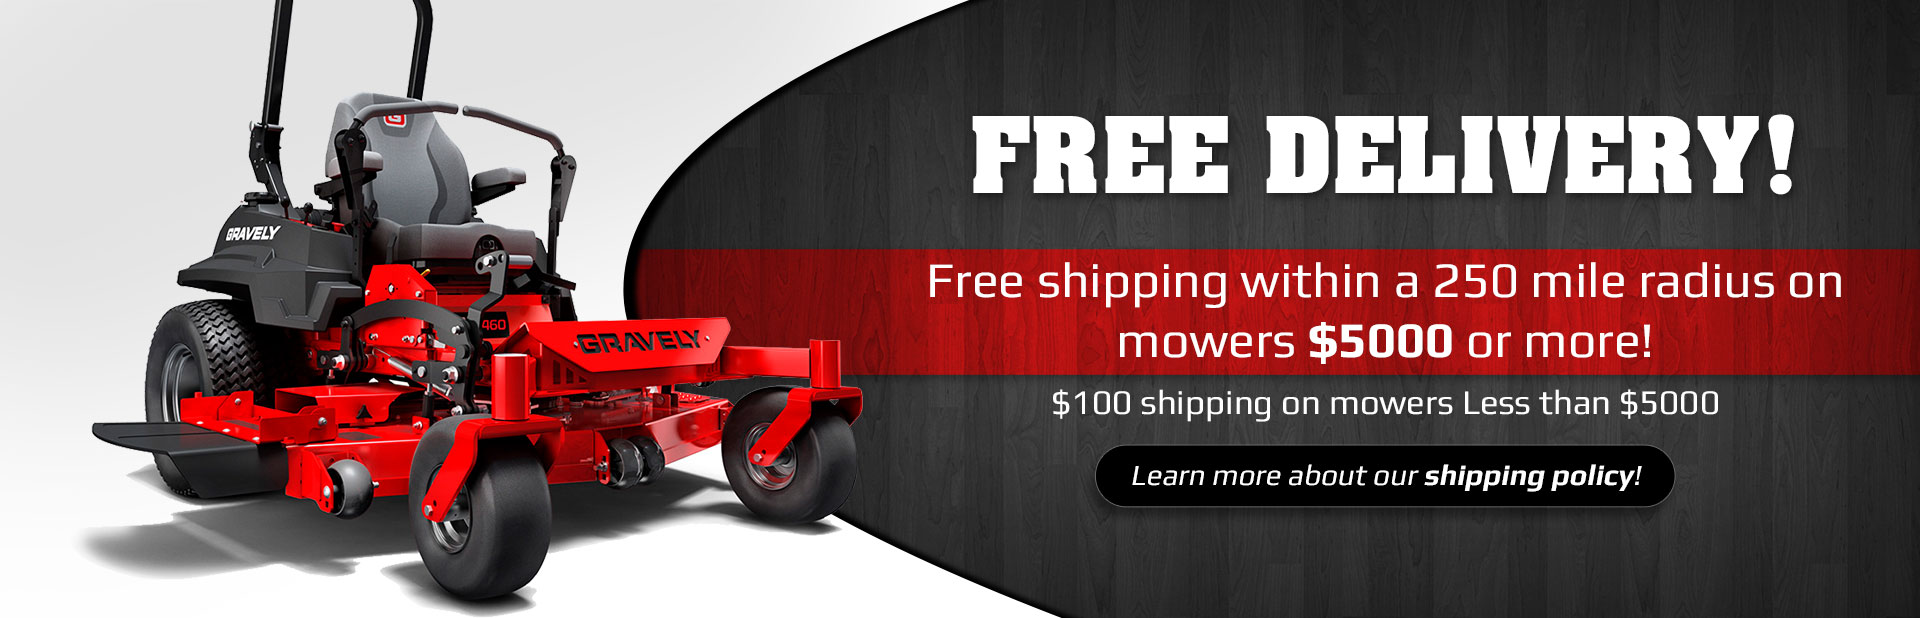 We offer free delivery and free shipping within a 250-mile radius! Click here to learn more about our shipping policy.